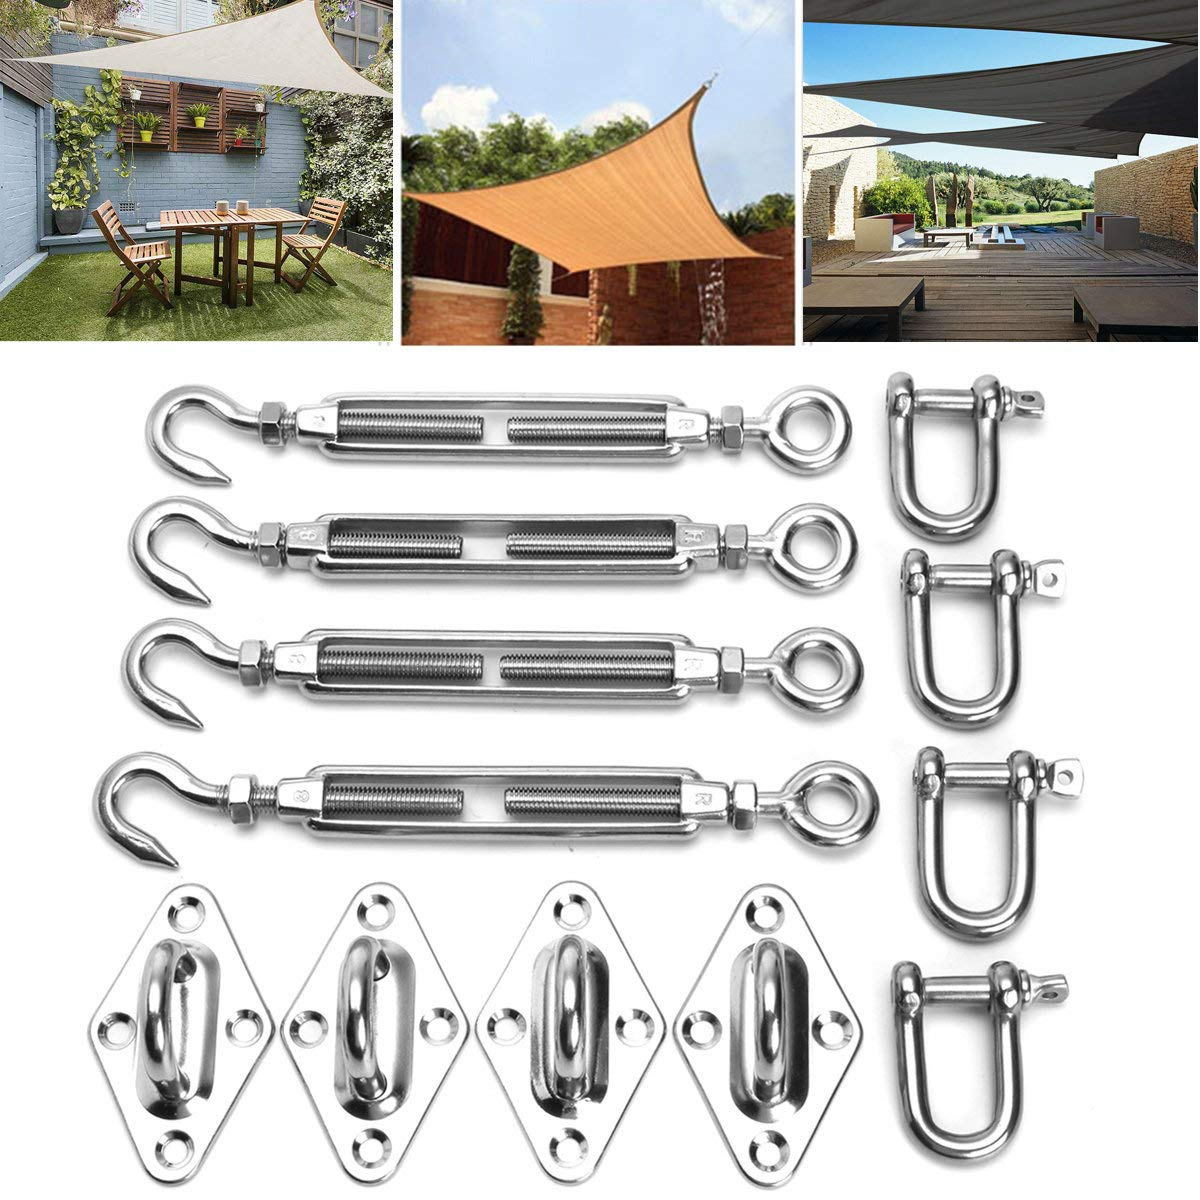 QHYXT M8 Sun Shade Sail Accessory Installation Kit,Stainless Steel Heavy Duty Hardware Kit for Triangle Rectangle Sails Anti-Rust for Outdoor Wall Fixing Mounting by QHYXT